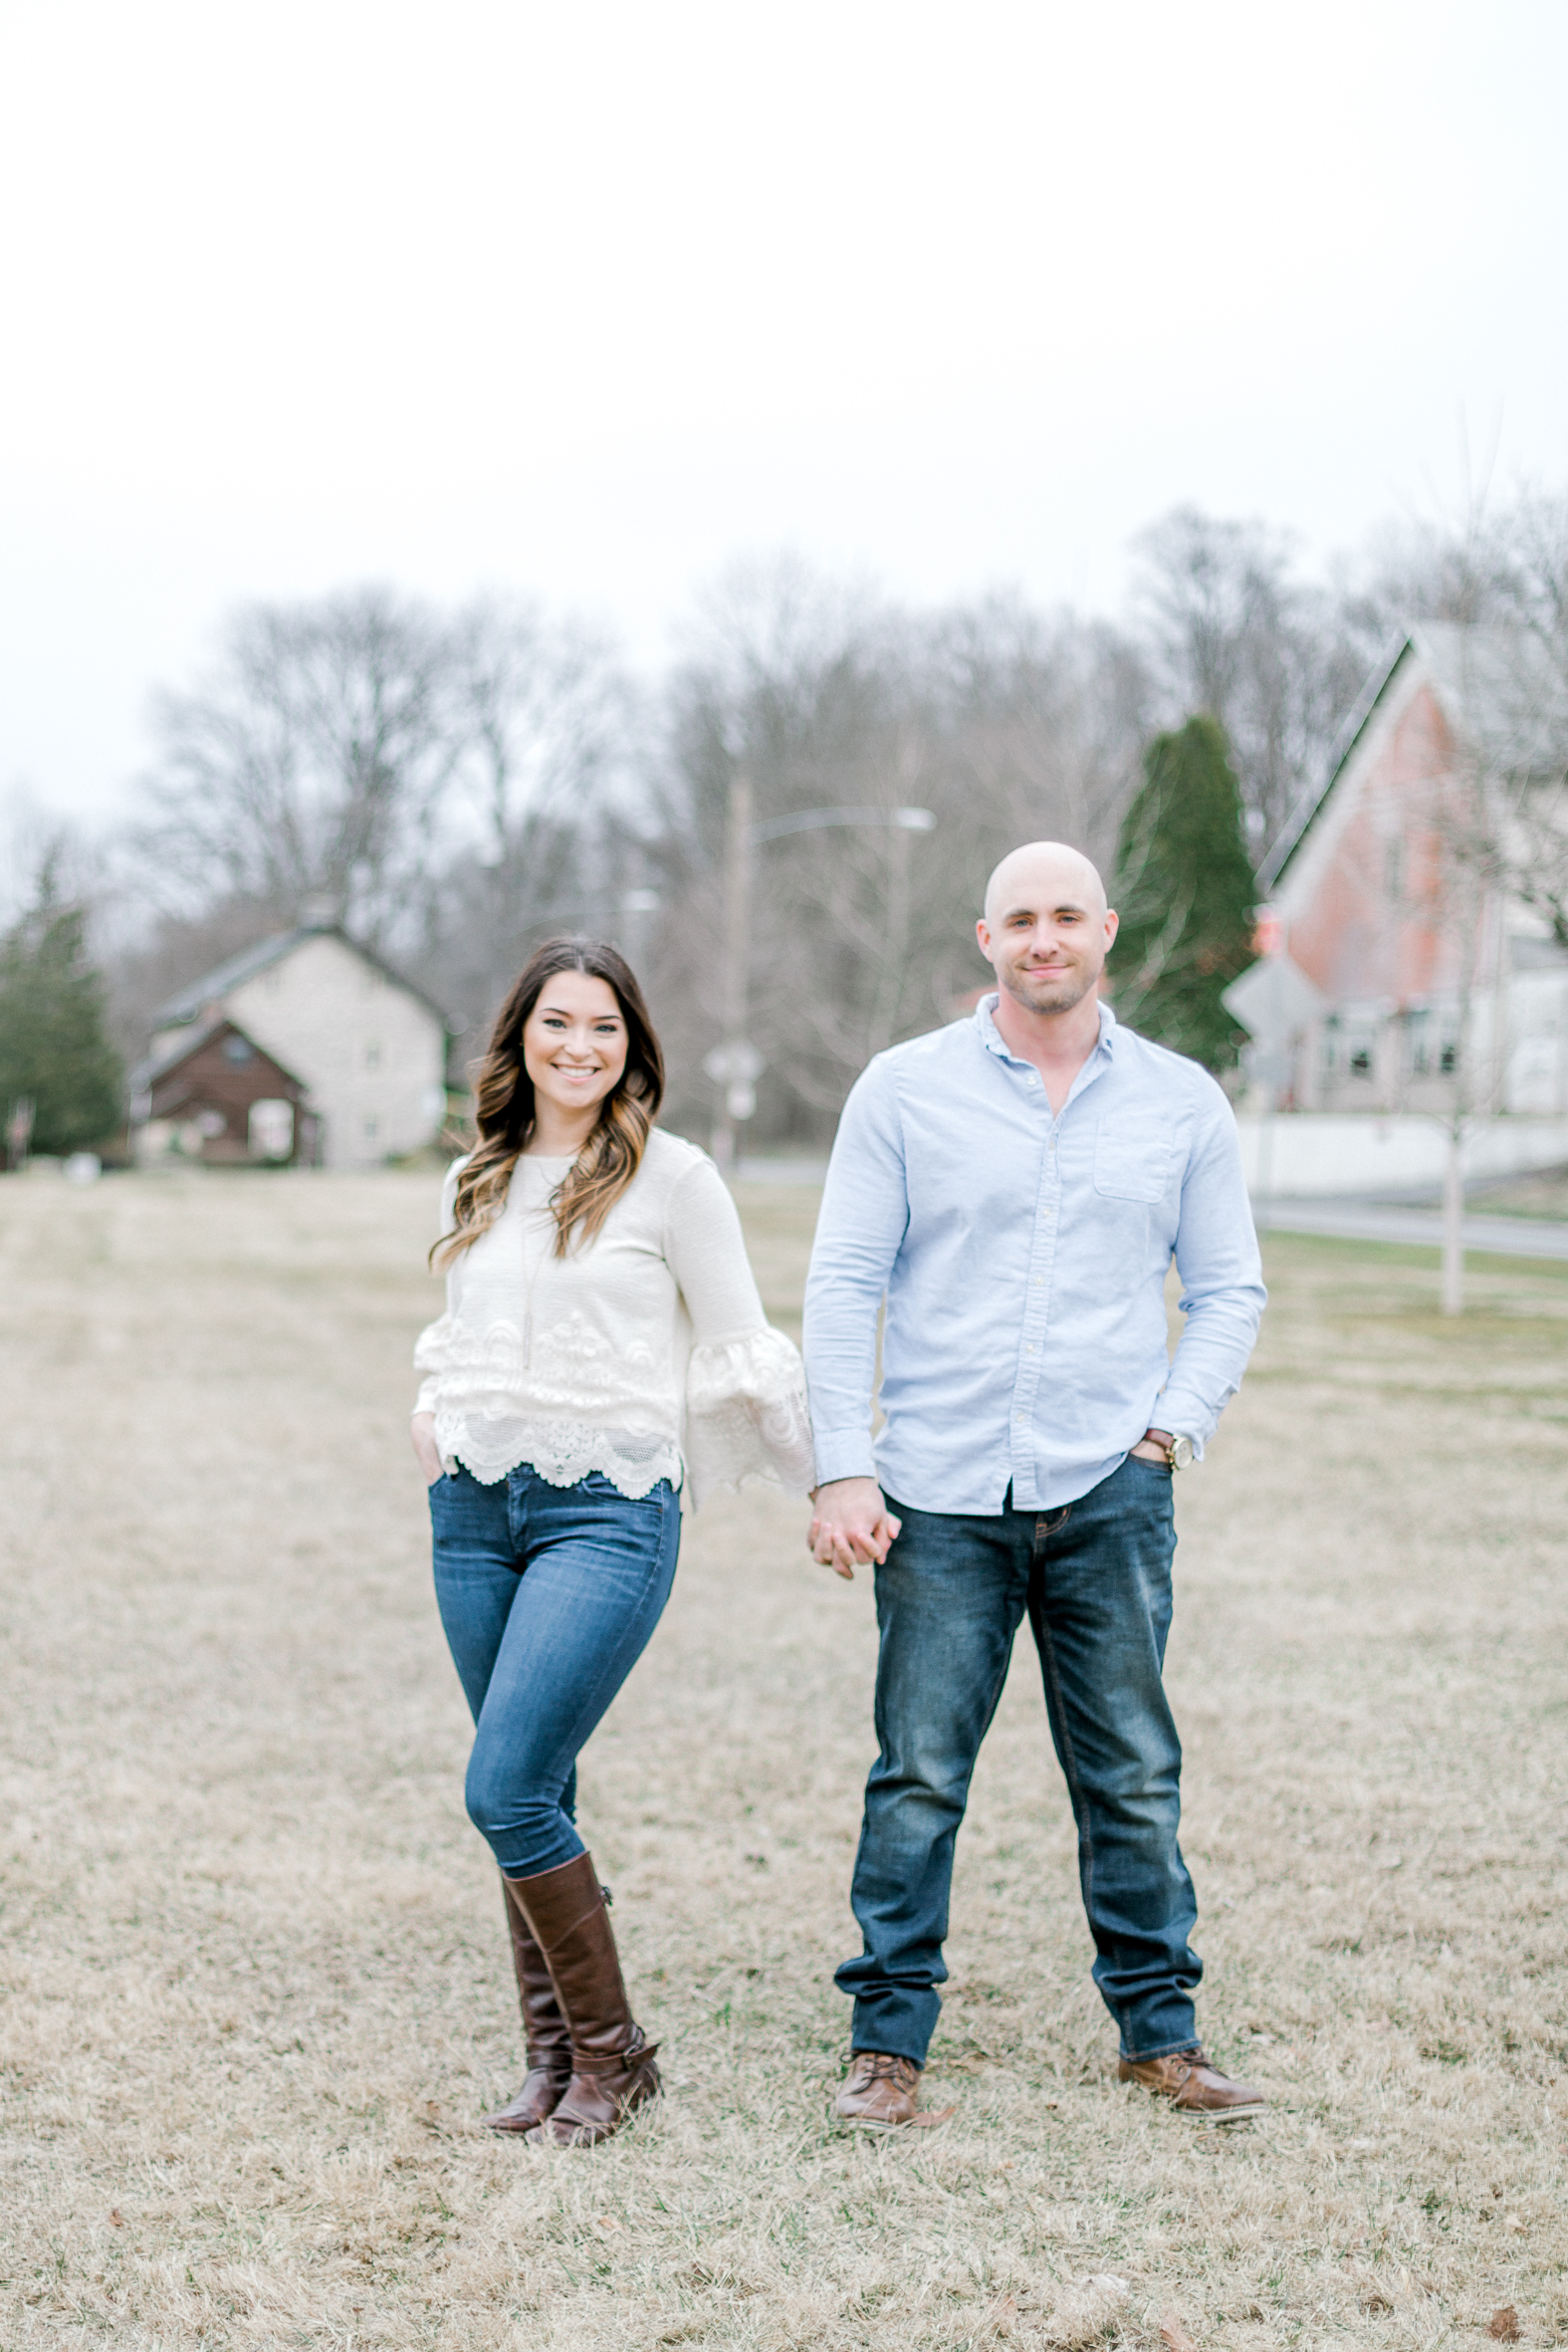 Lehigh Valley Allentown Fish Hathchery Spring Engagement Session pennsylvania lehigh valley allentown philadelphia kutztown wedding photographer lytle photo co (10 of 115).jpg